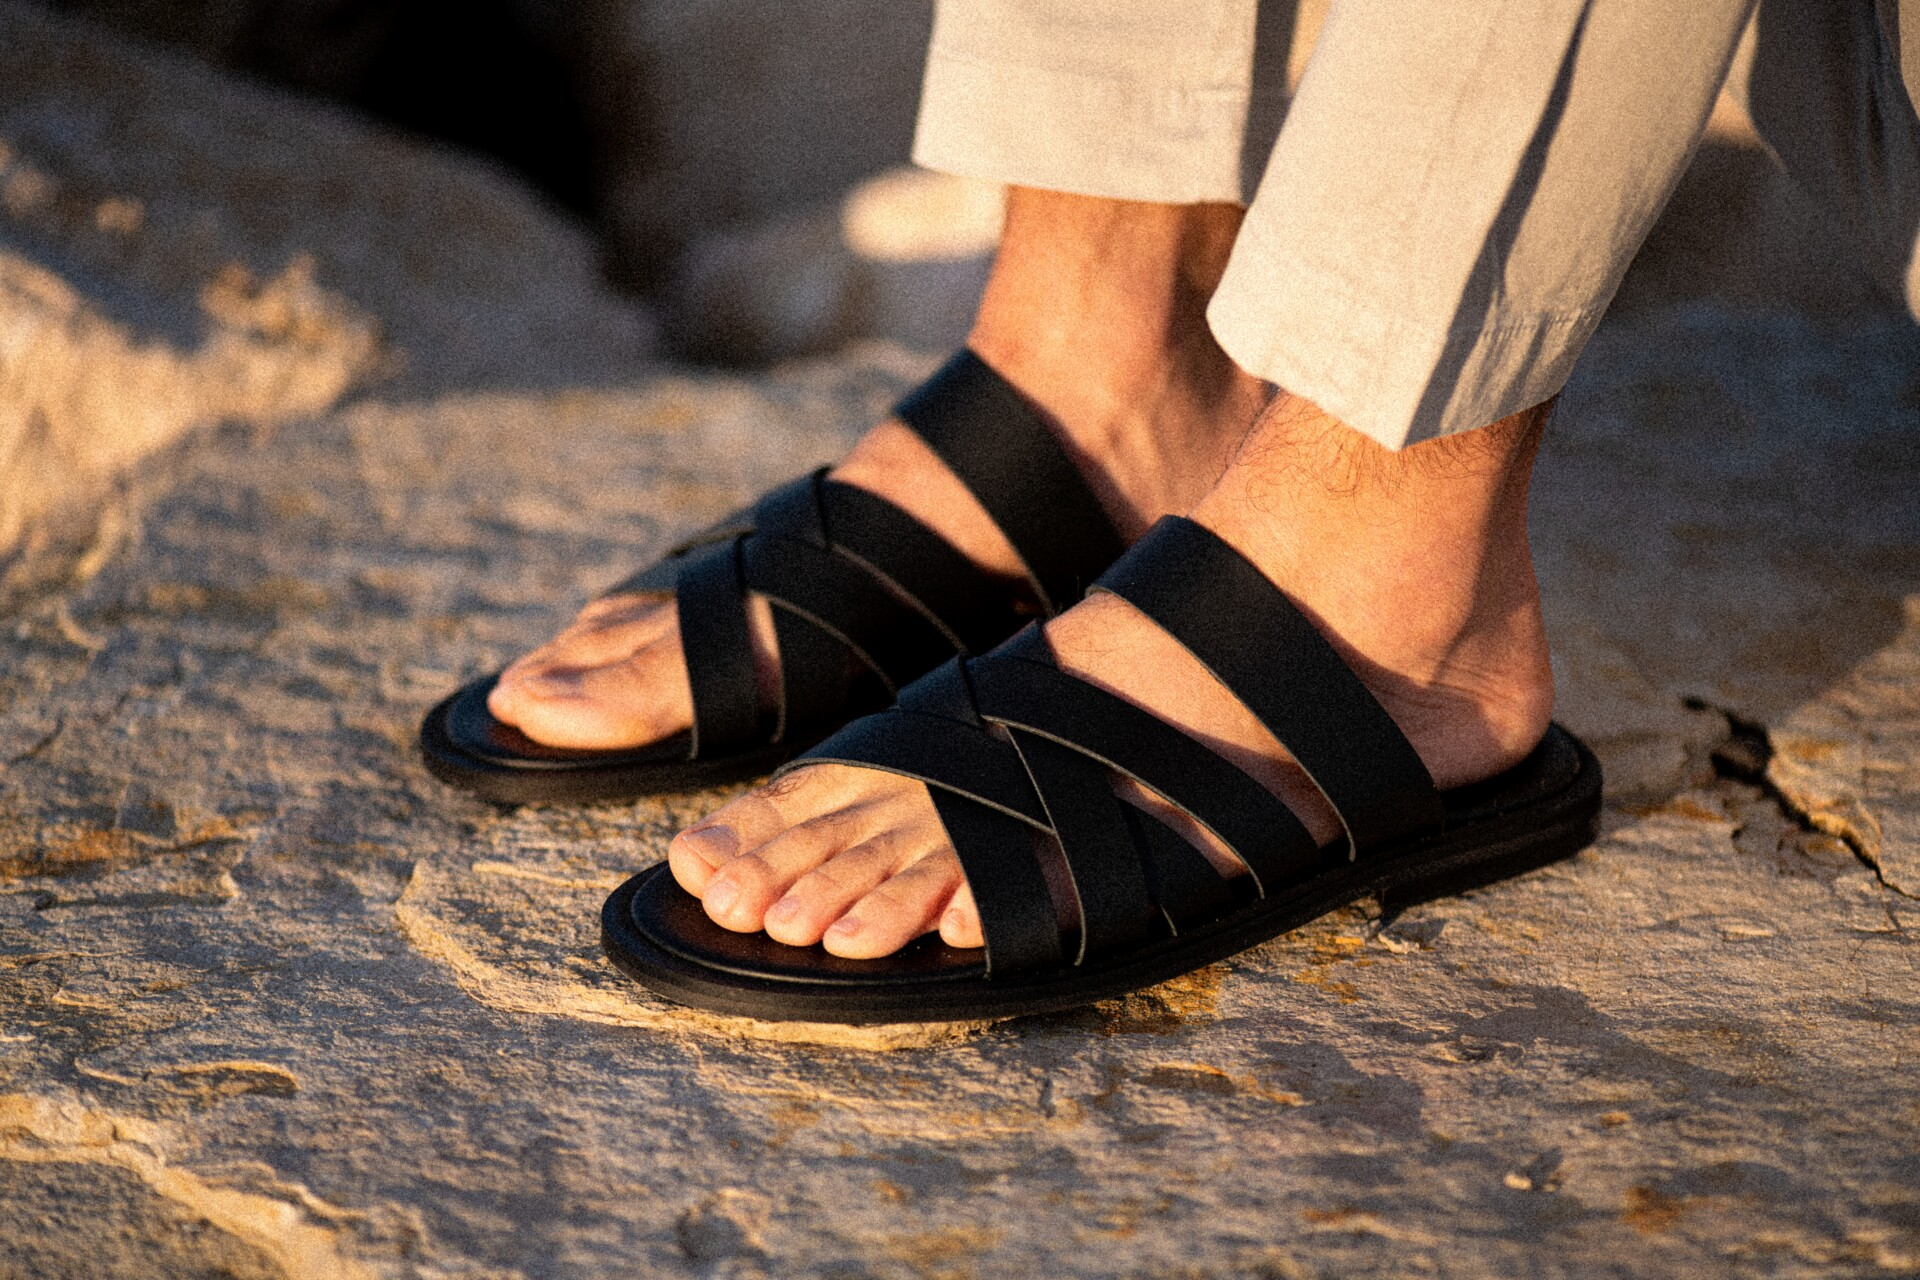 zeus-sandals-made-in-italy-fashion-shop-5